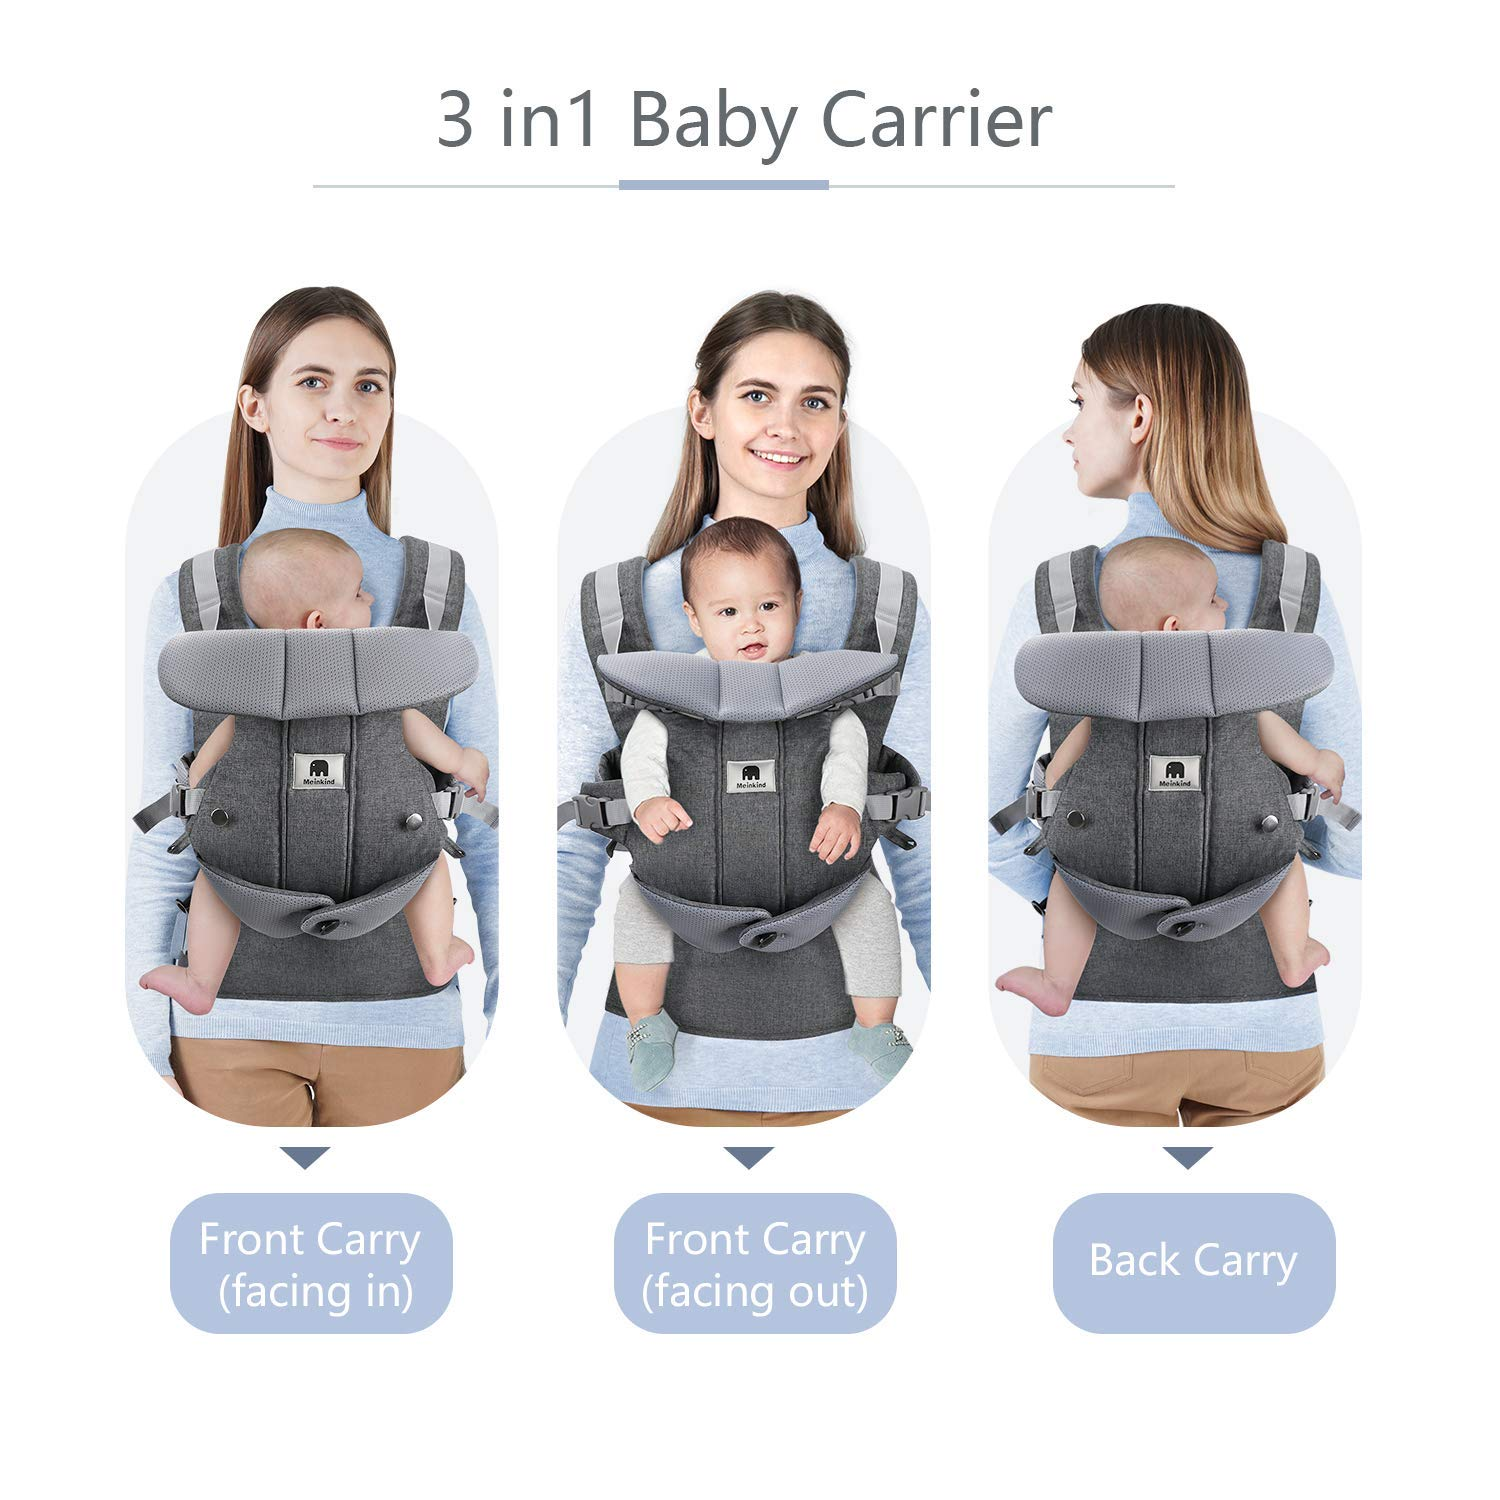 3.8 to 20 kg Baby Carrier for Newborn Grey Model A Puzzlos 4-in-1 Newborn to Toddler Baby Carrier Backpack and Front Baby Sling Carrier up to 48 Months